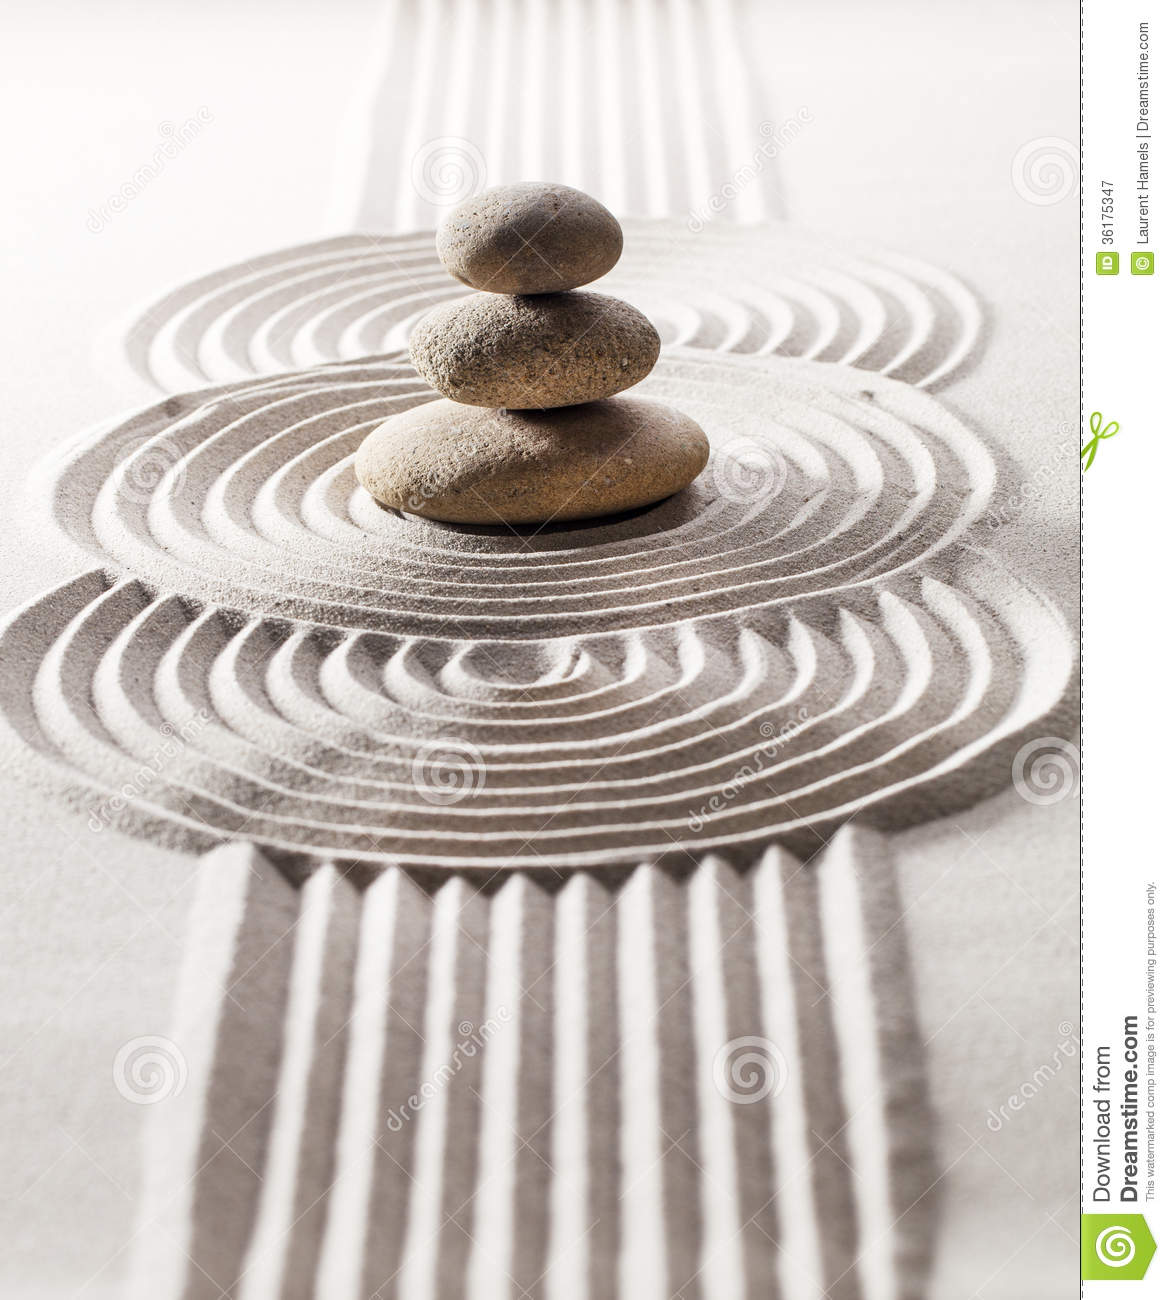 Symbol of relaxing serenity stock image image of life balance symbol of relaxing serenity biocorpaavc Gallery